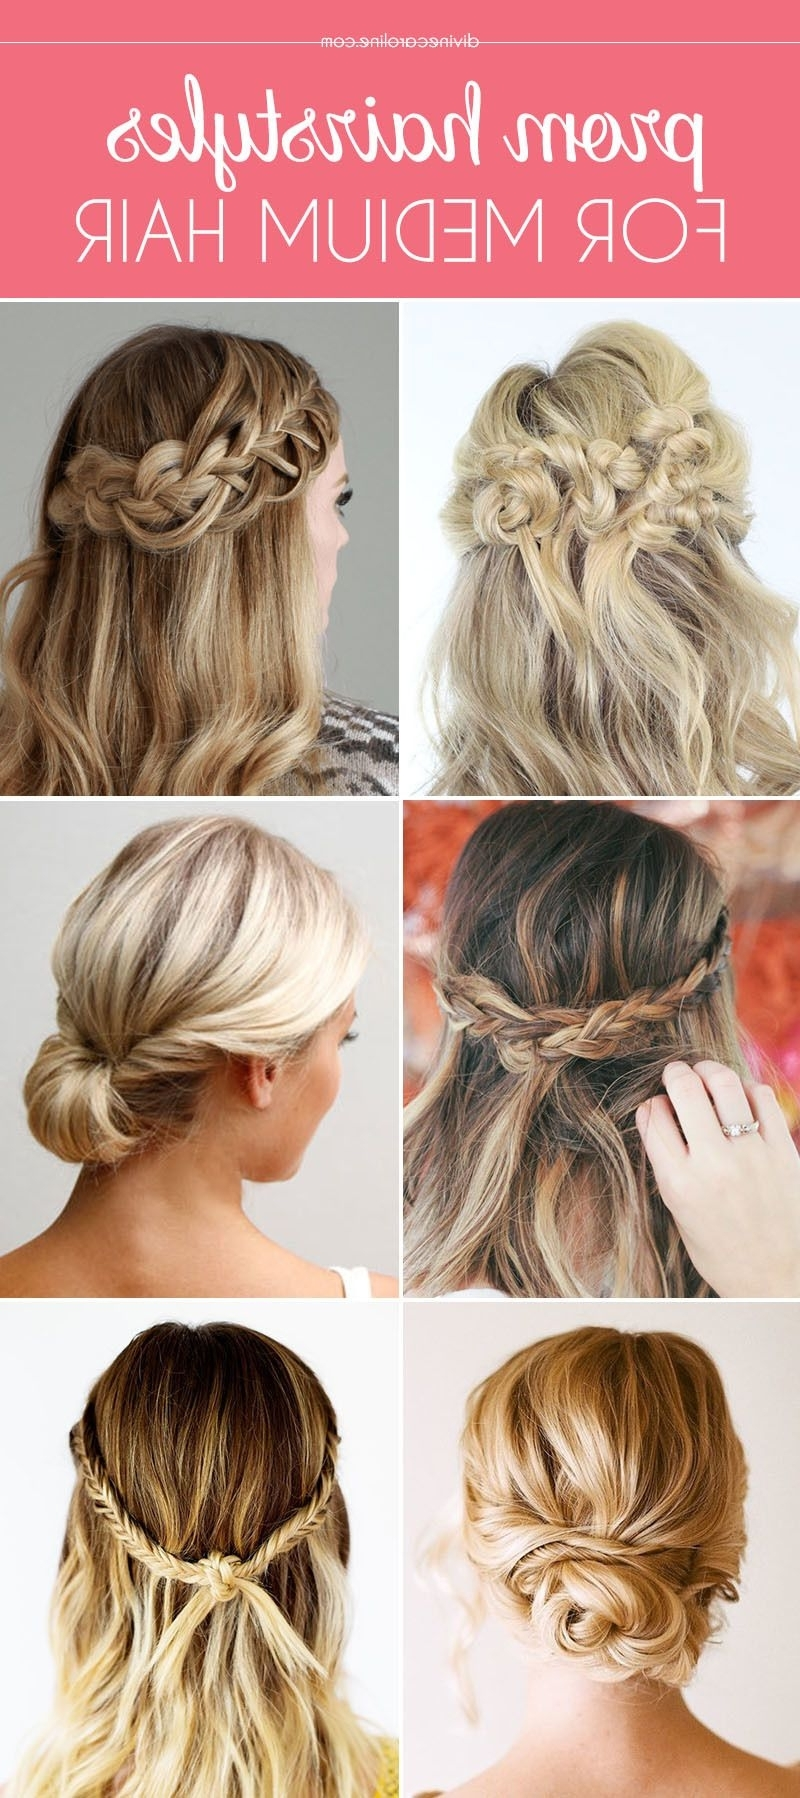 Our Favorite Prom Hairstyles For Medium Length Hair More 20+ Stylish Medium Hairstyles For Homecoming